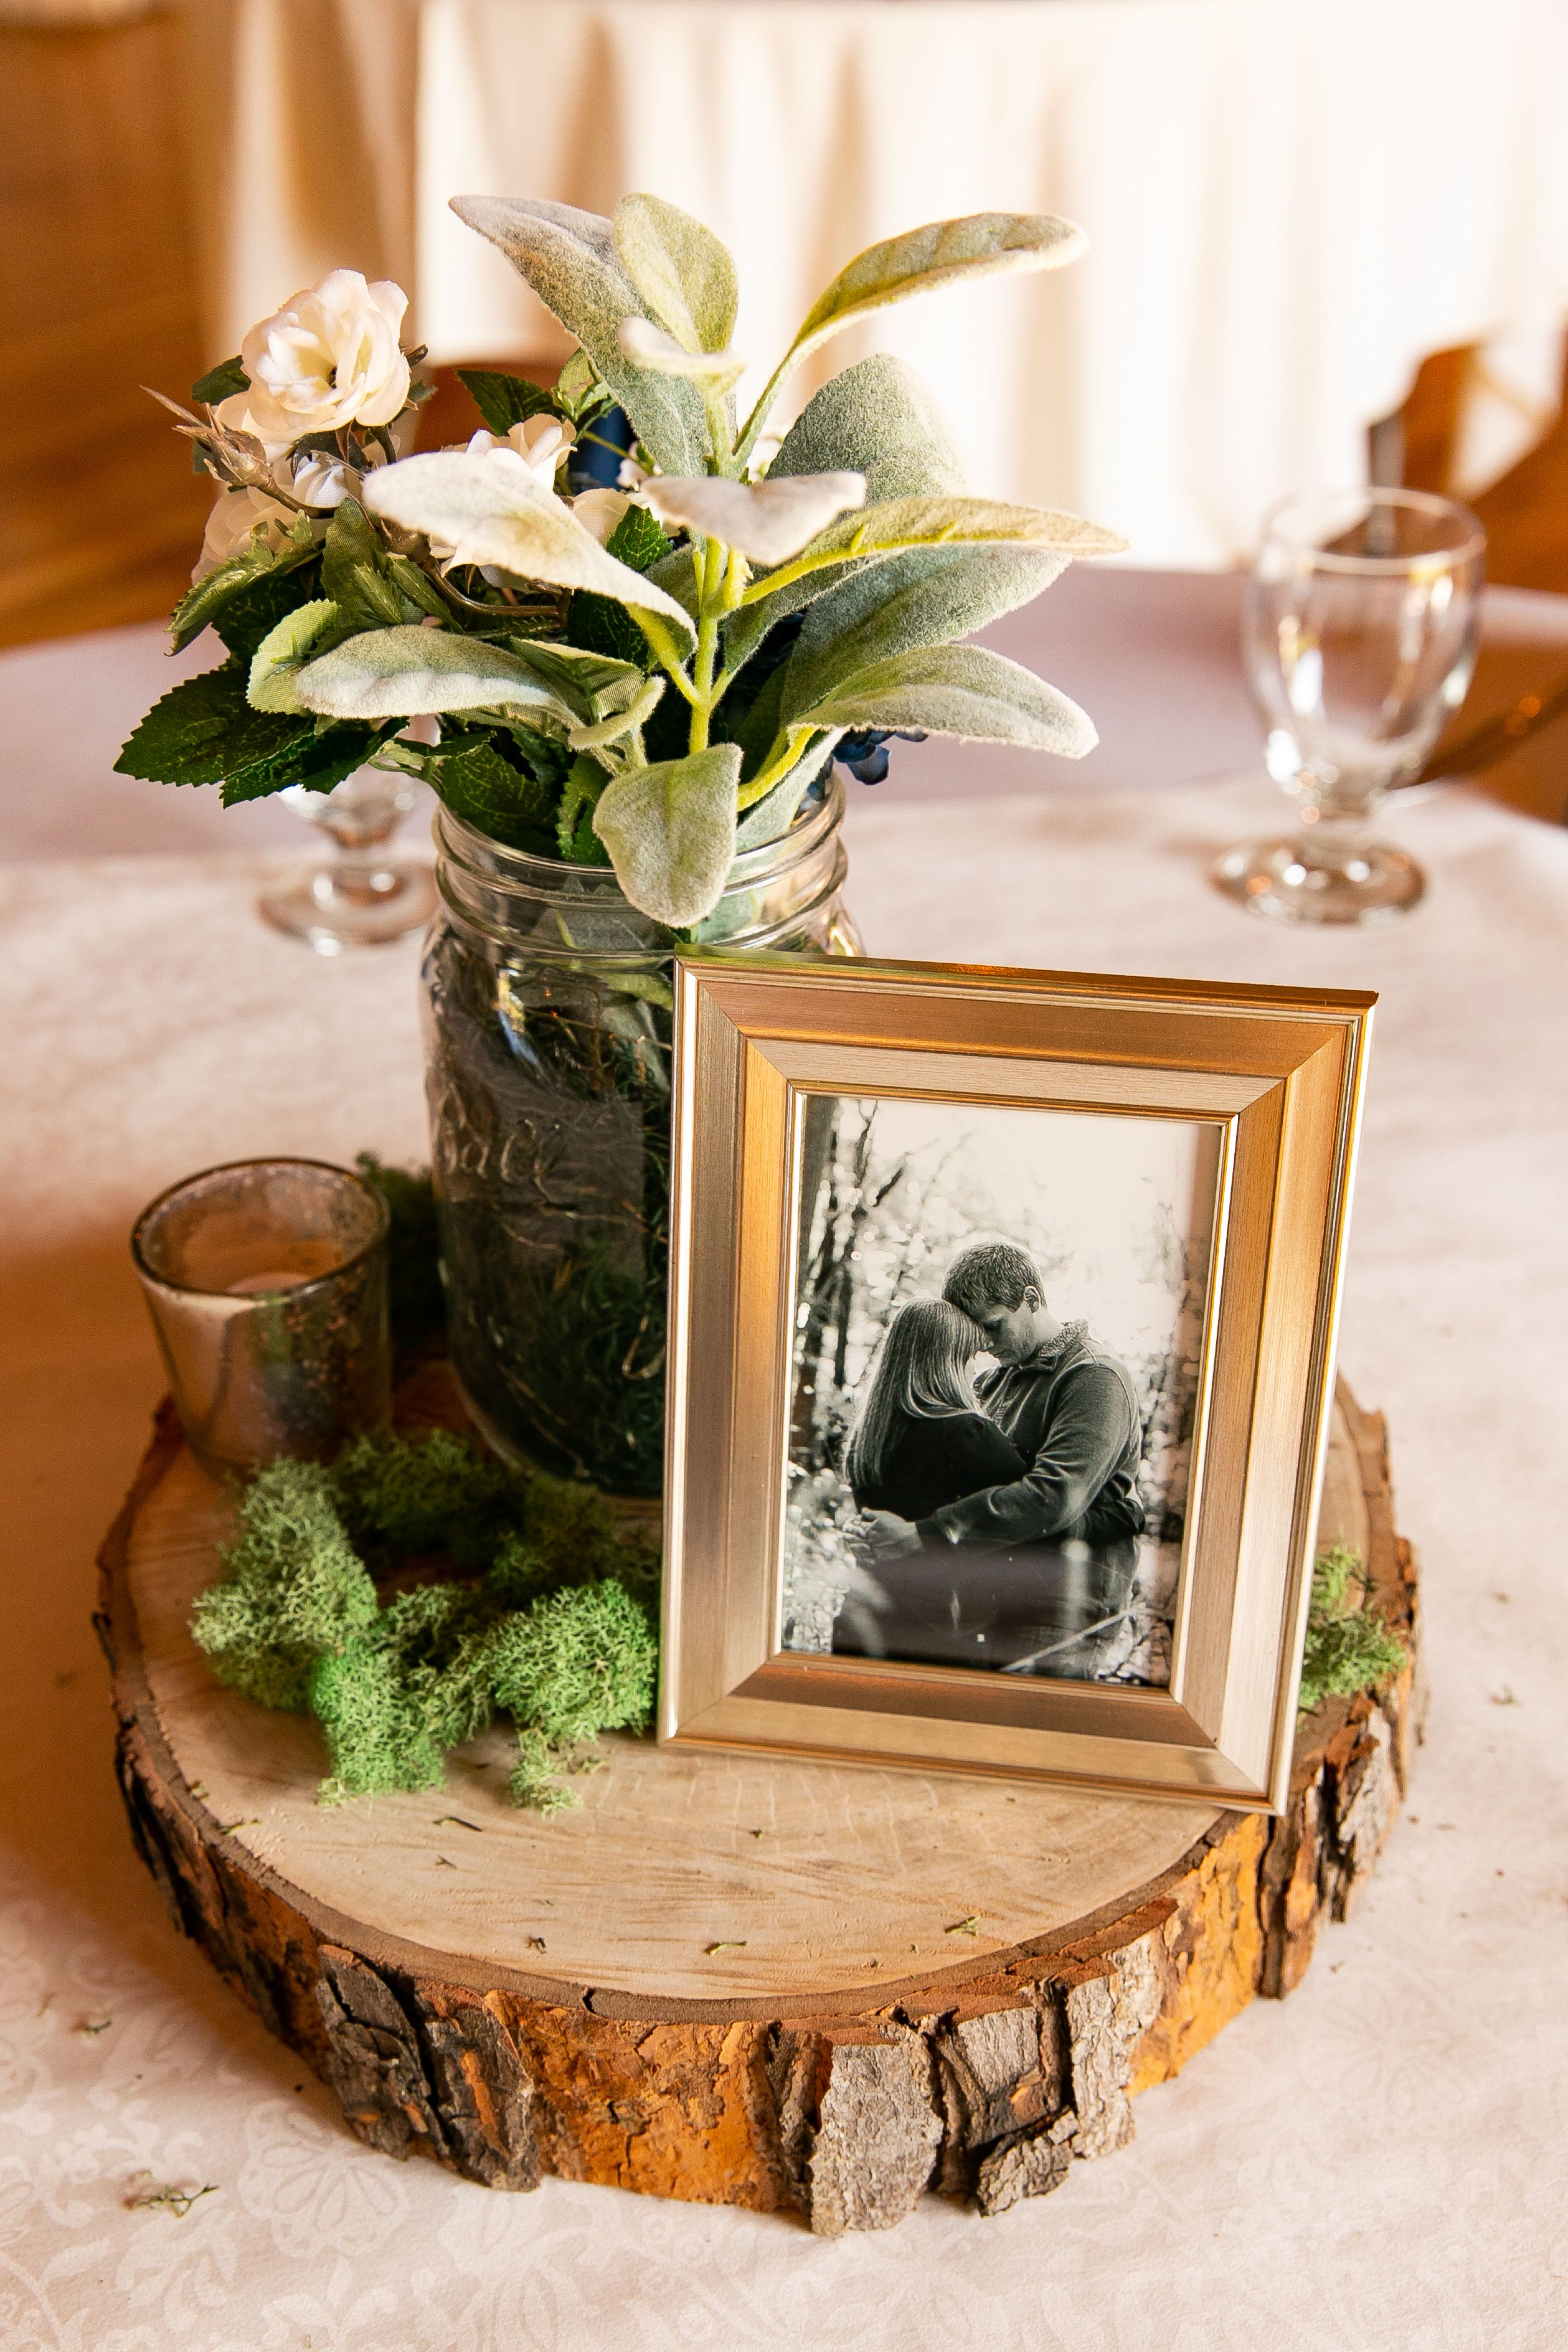 Rustic Wedding Table Centerpiece Wedding Table Centerpieces Rustic Barn Wedding Centerpieces Wood Slice Centerpiece Wedding